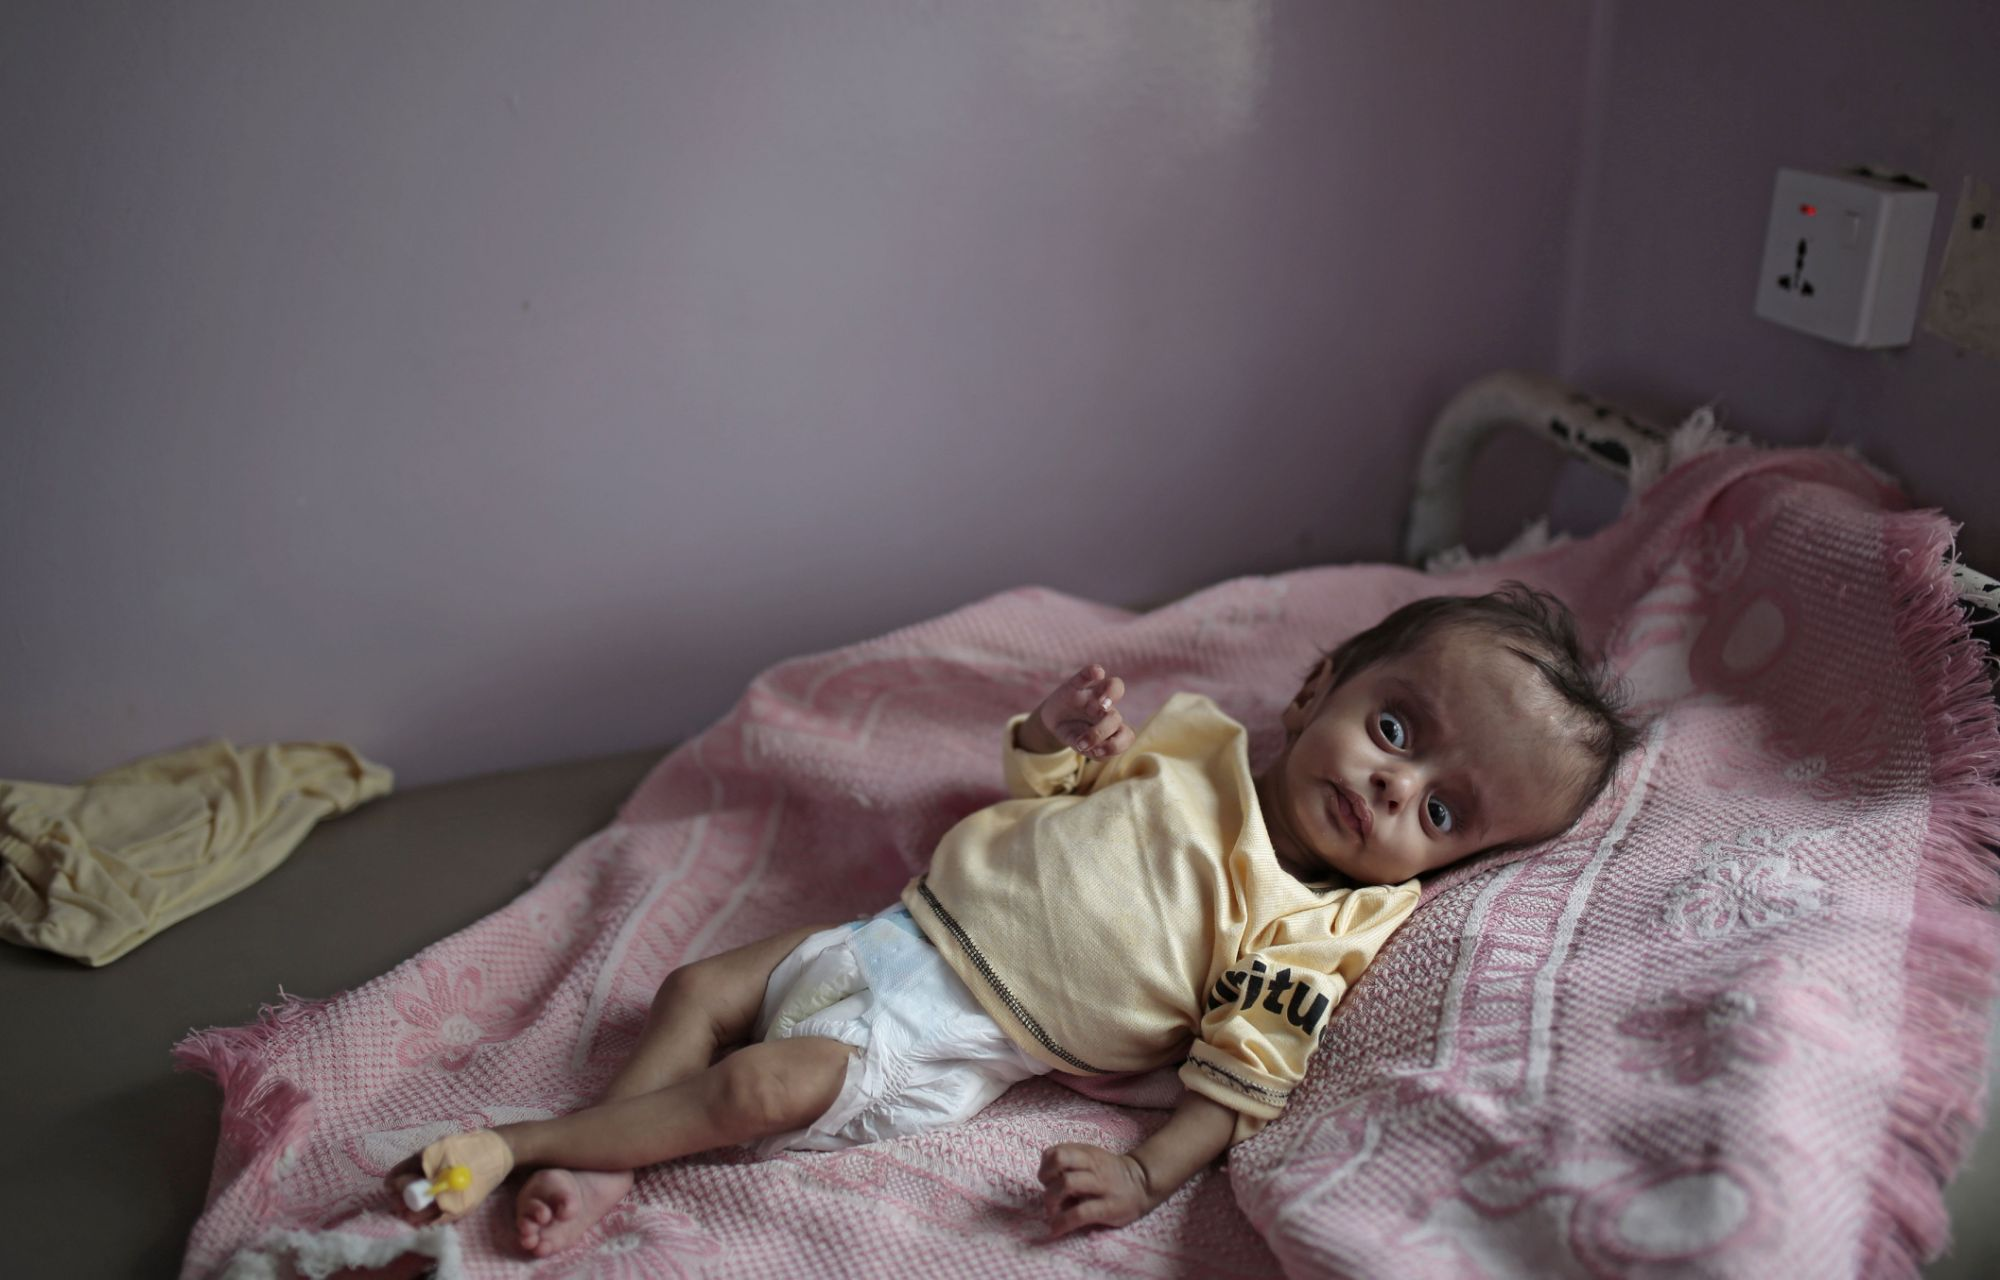 UN launching donor conference amid fears of famine in Yemen